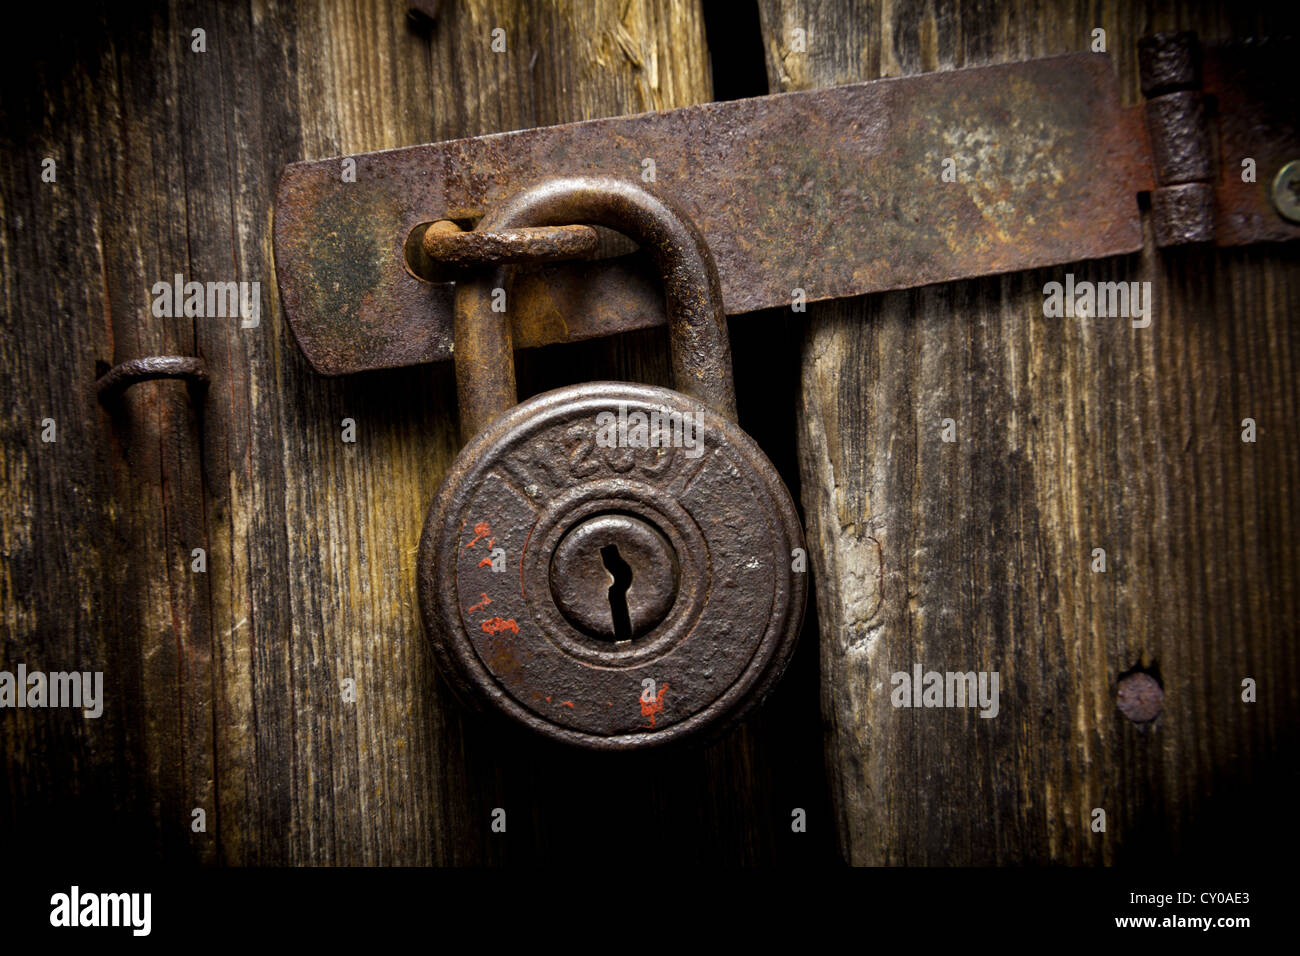 Rusty padlock with numbers - Stock Image